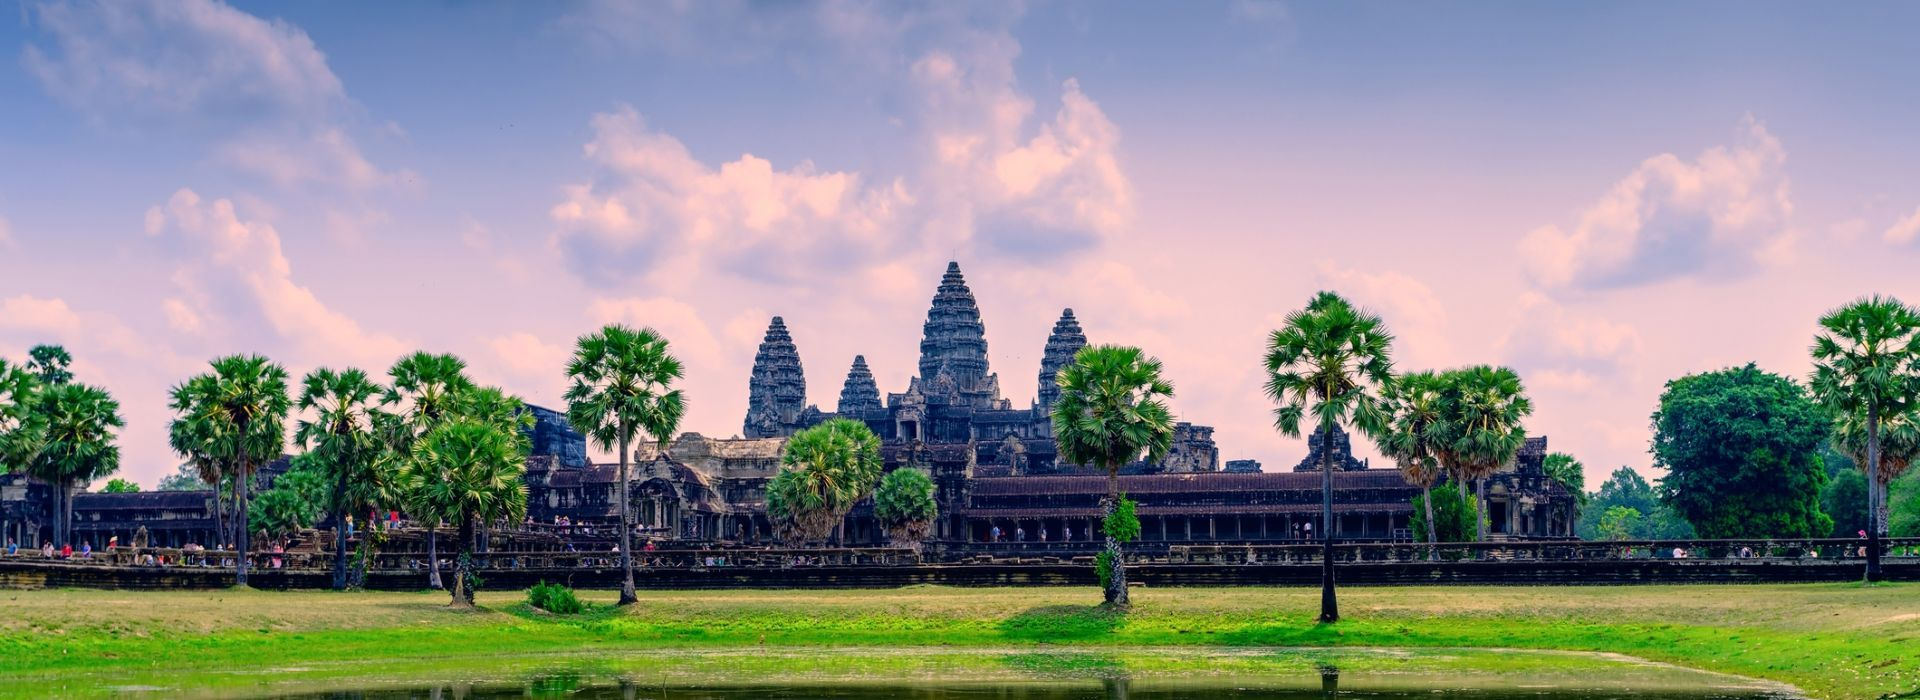 Local boat rides Tours in Angkor Wat